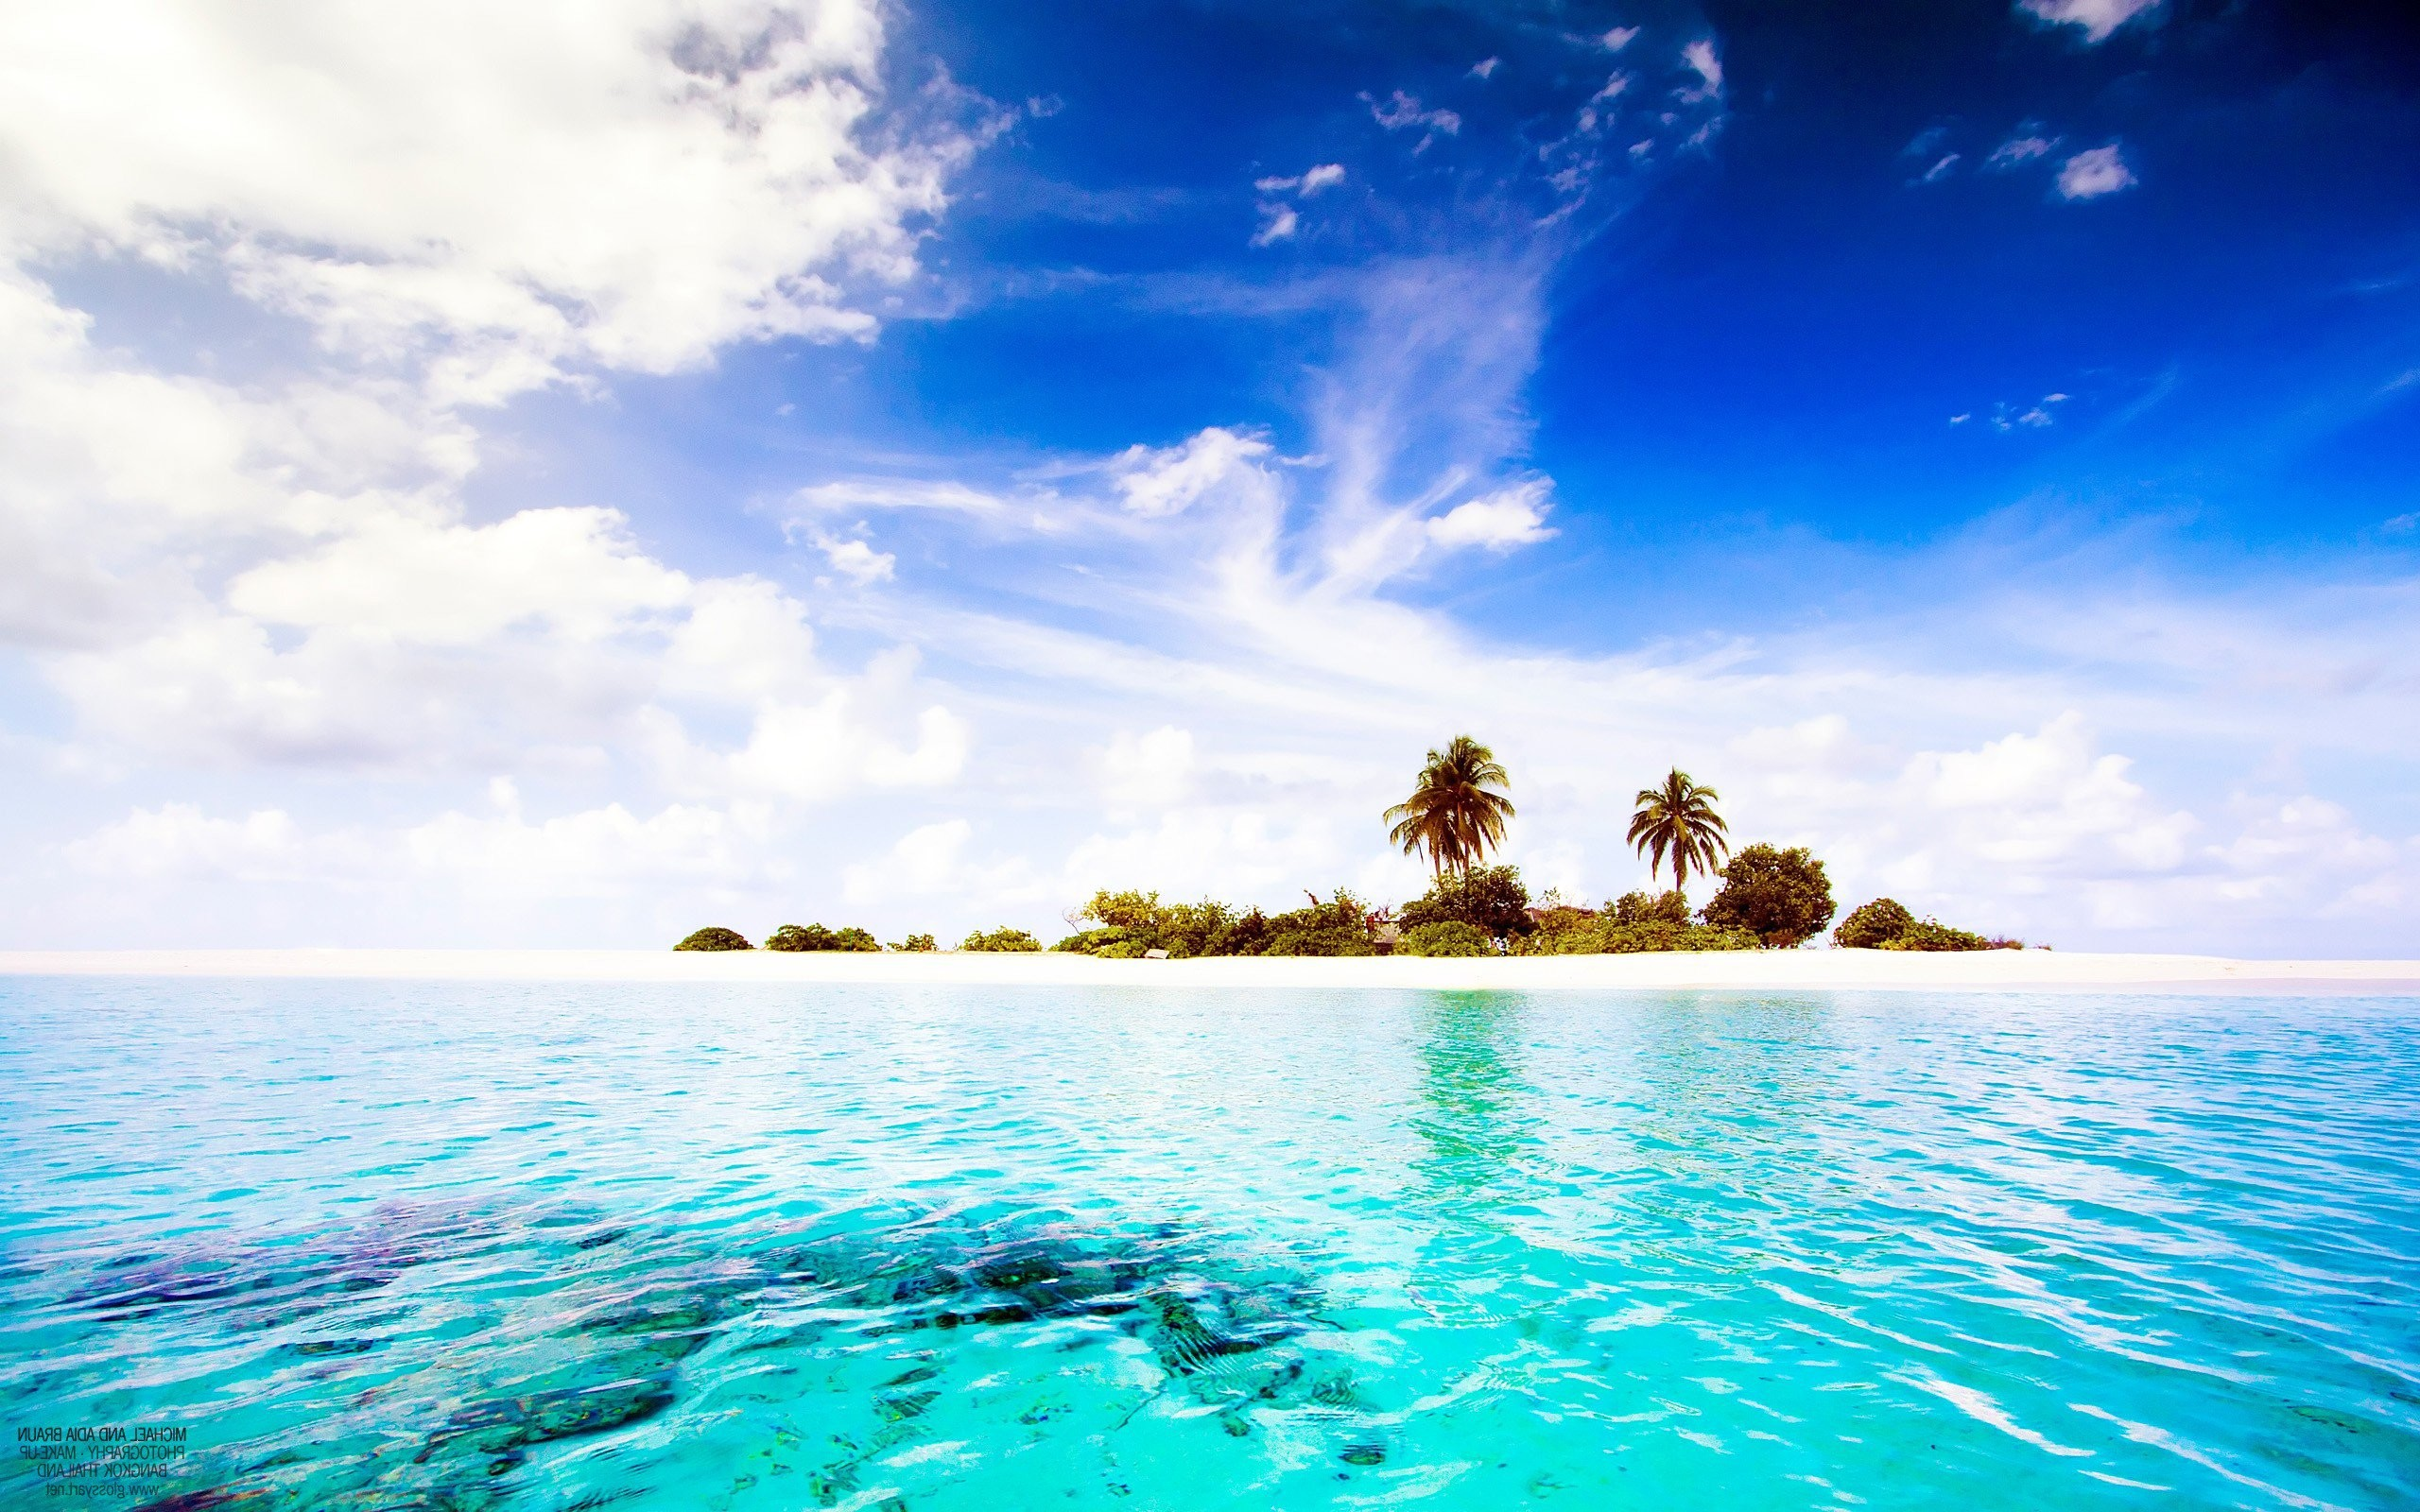 Res: 2560x1600, Maldives Diggiri Island wallpapers (12 Wallpapers)